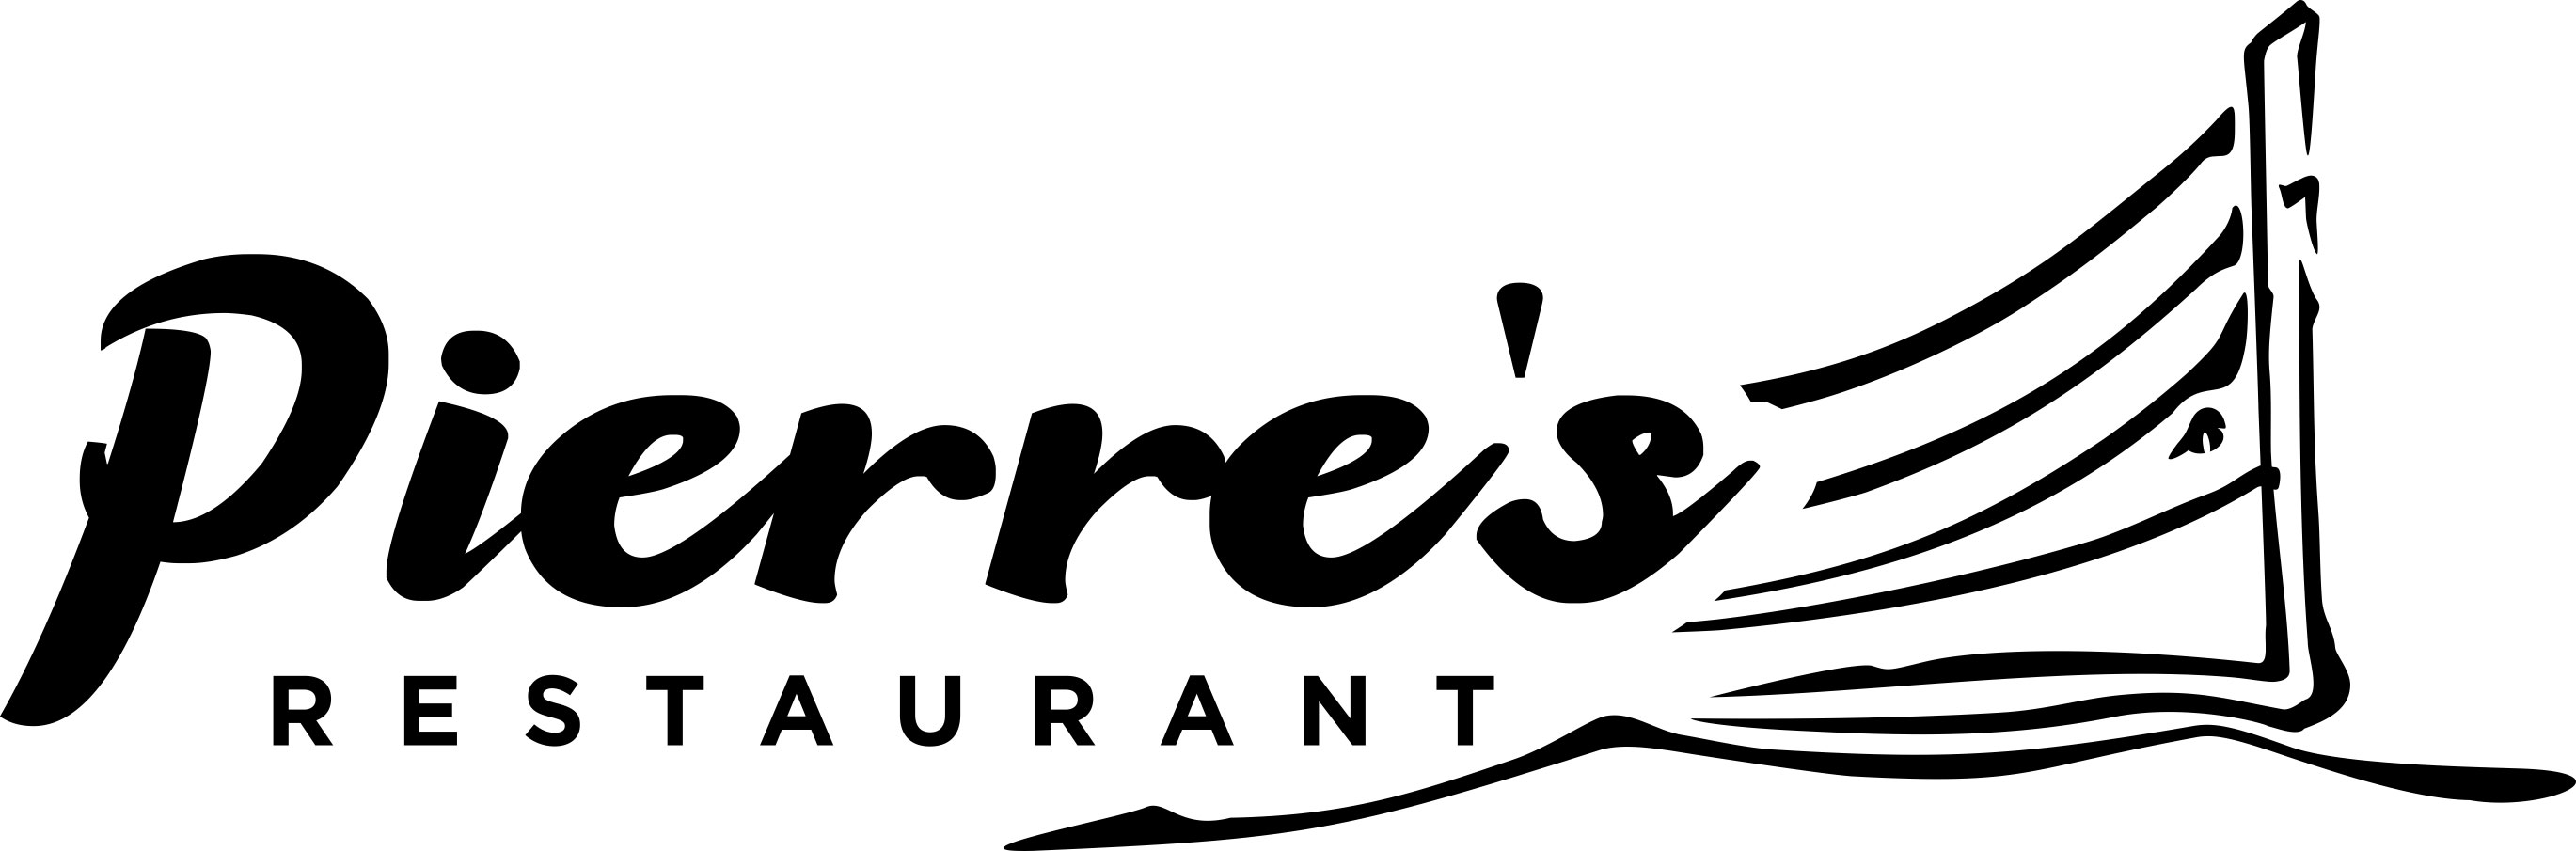 PIERRE'S RESTAURANT